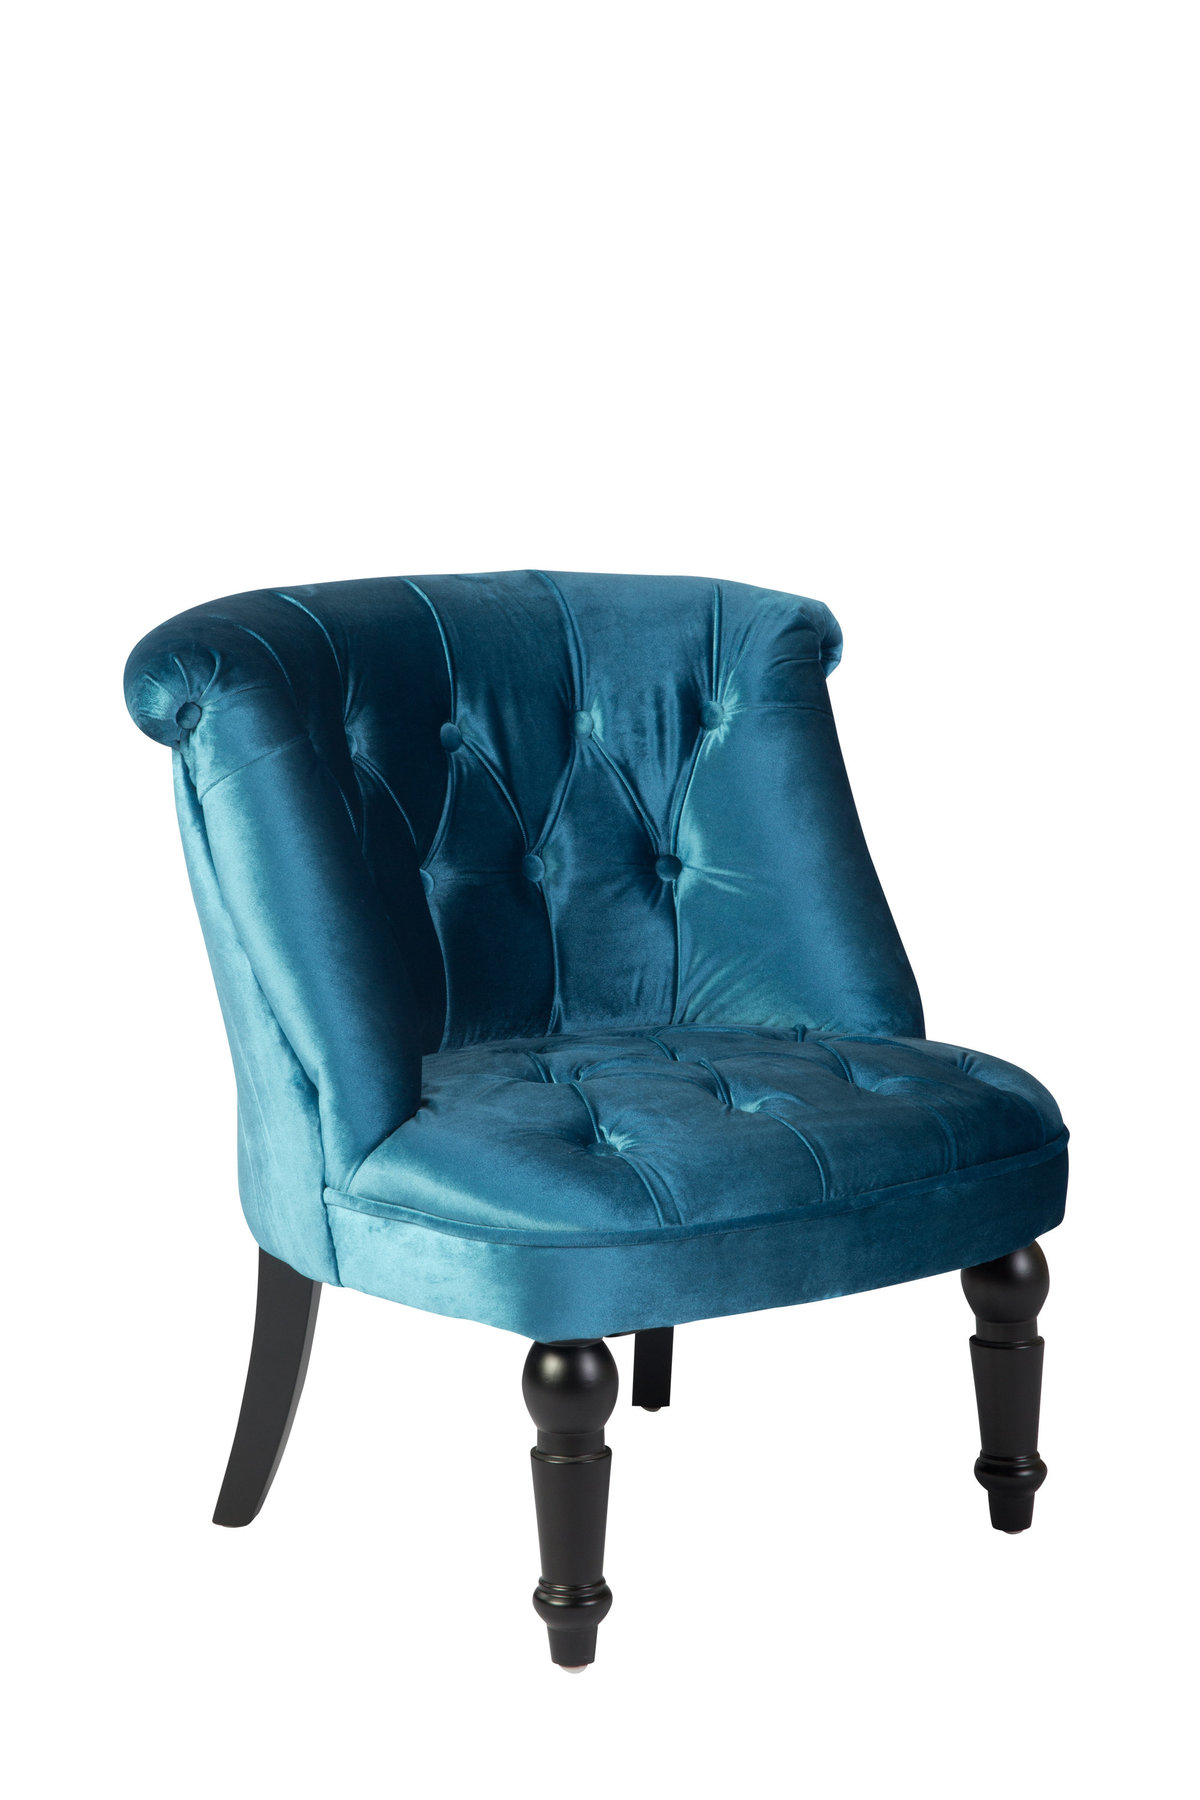 Siena Blue Club Chair